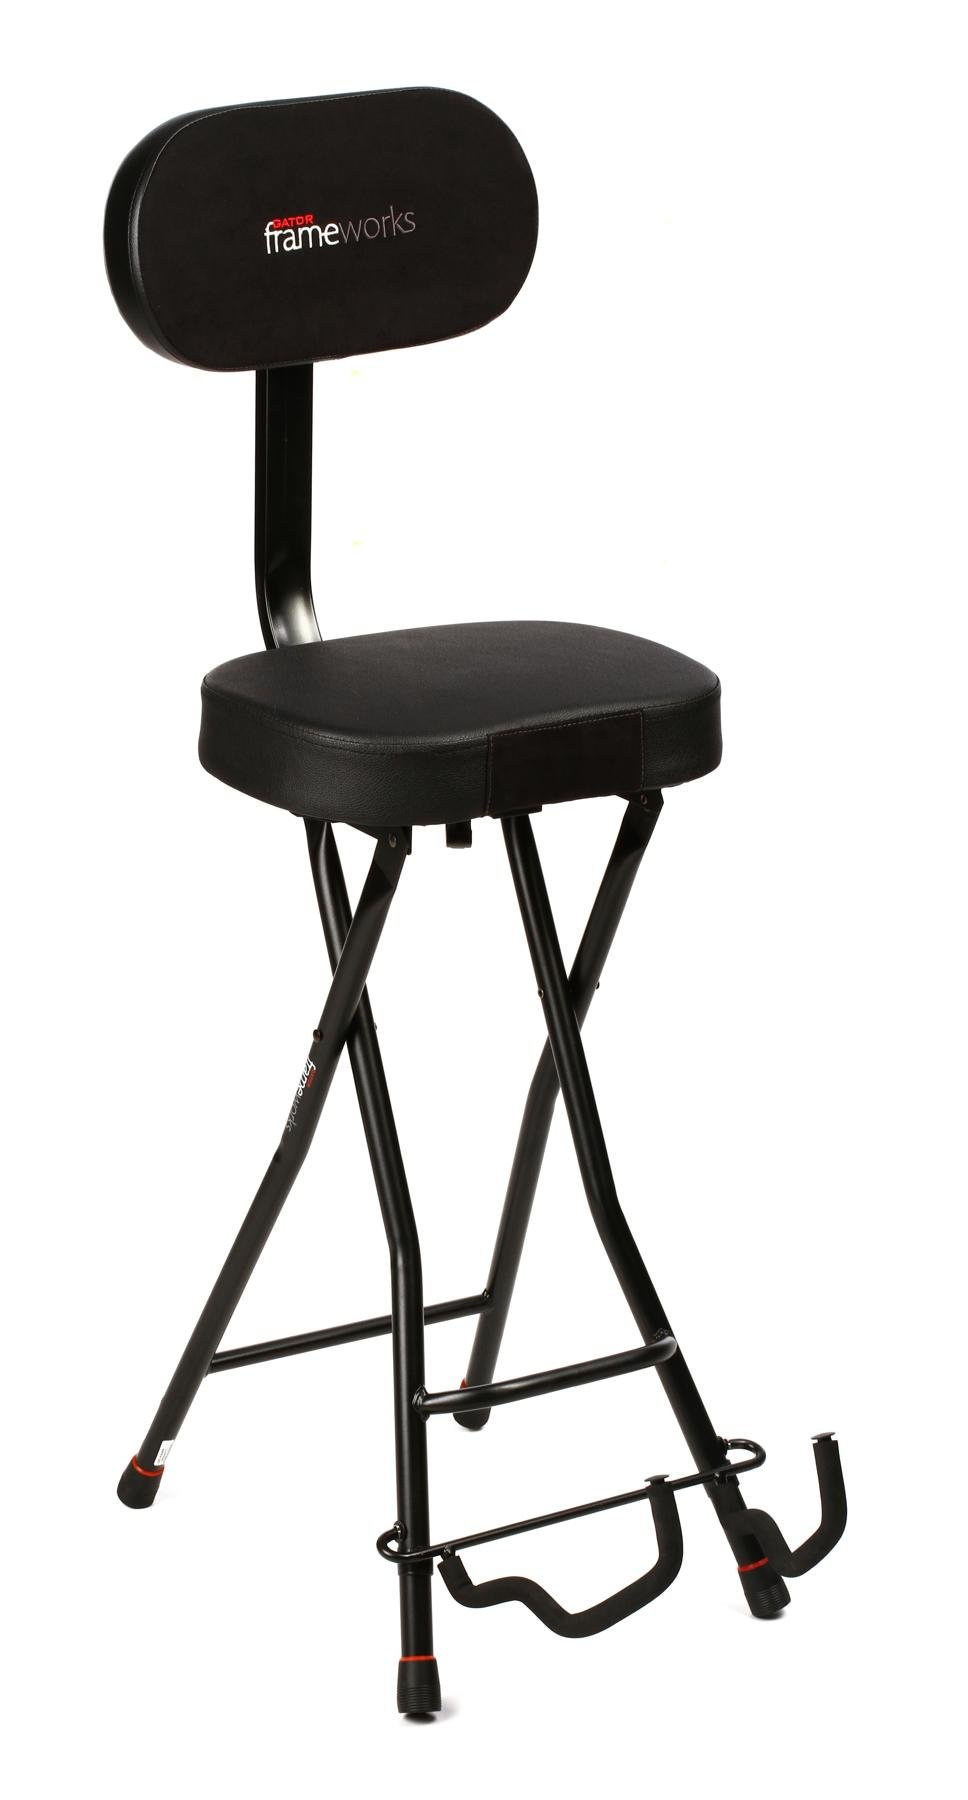 Guitar Stool Australia Gator Frameworks Gfw Gtr Seat Guitar Seat Stand Combo Sweetwater